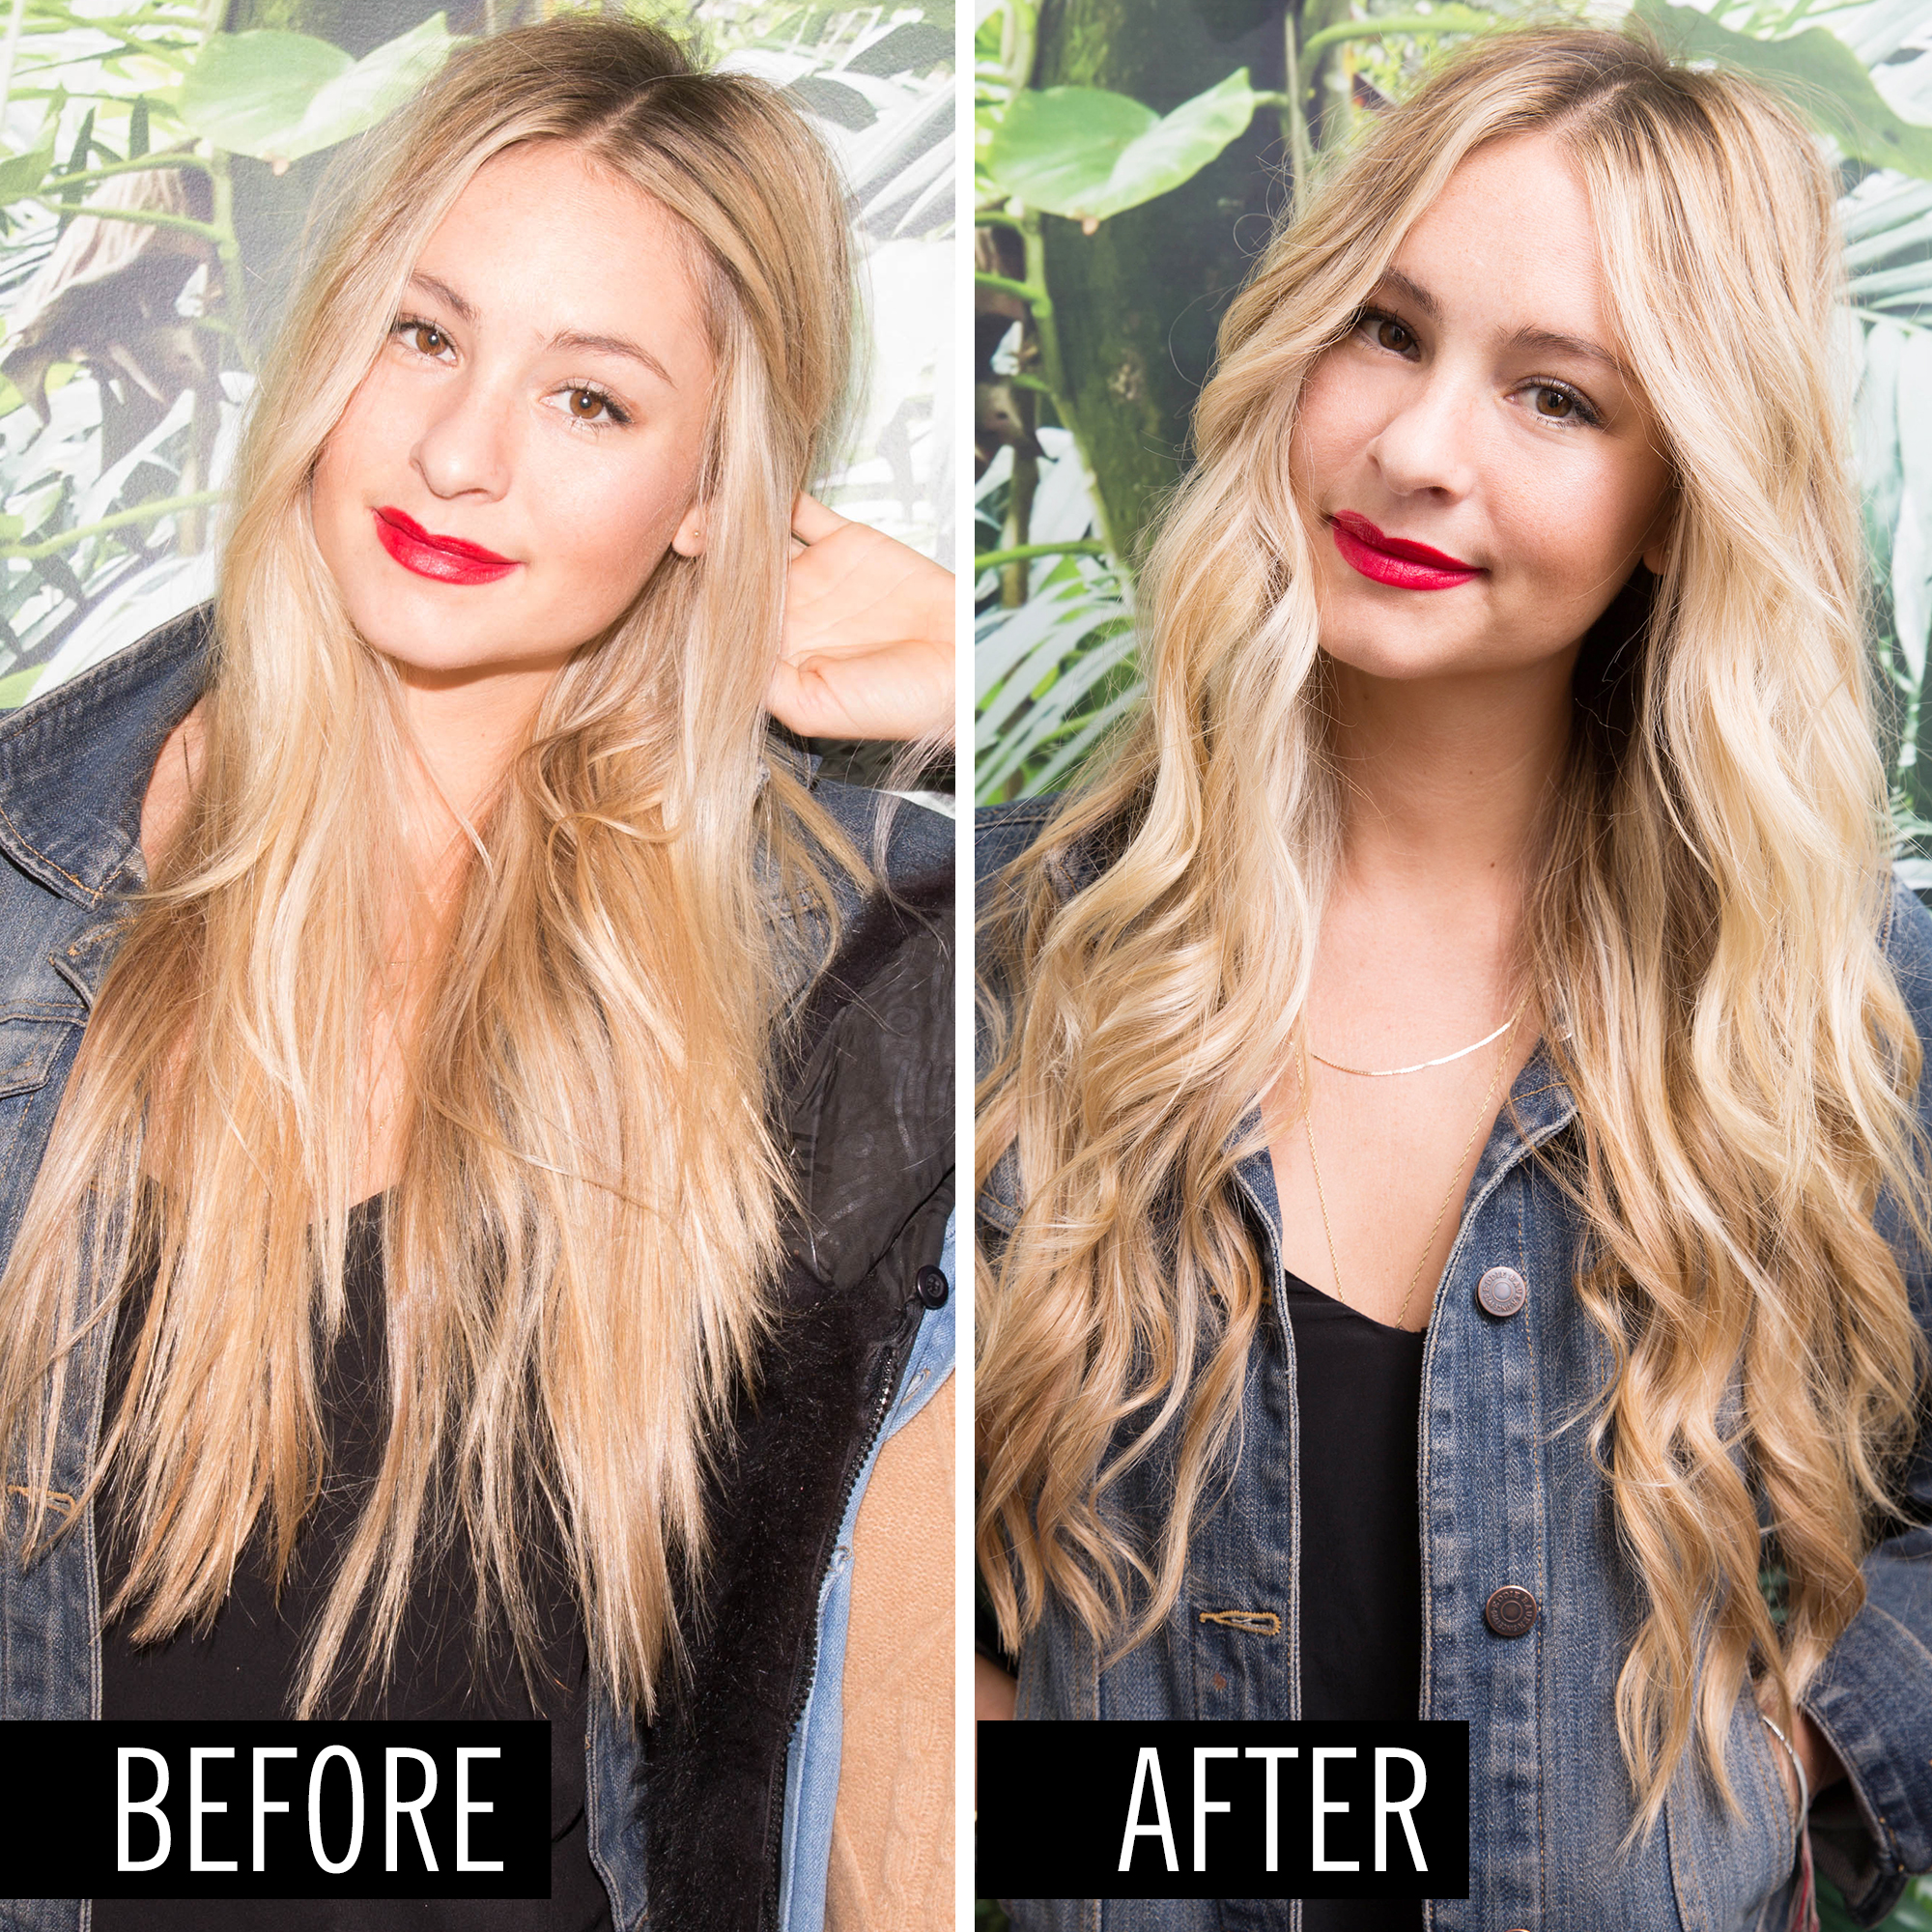 ways to style hair with straightener how to curl your hair with a straightener flat iron 3282 | 1445266822 index 2